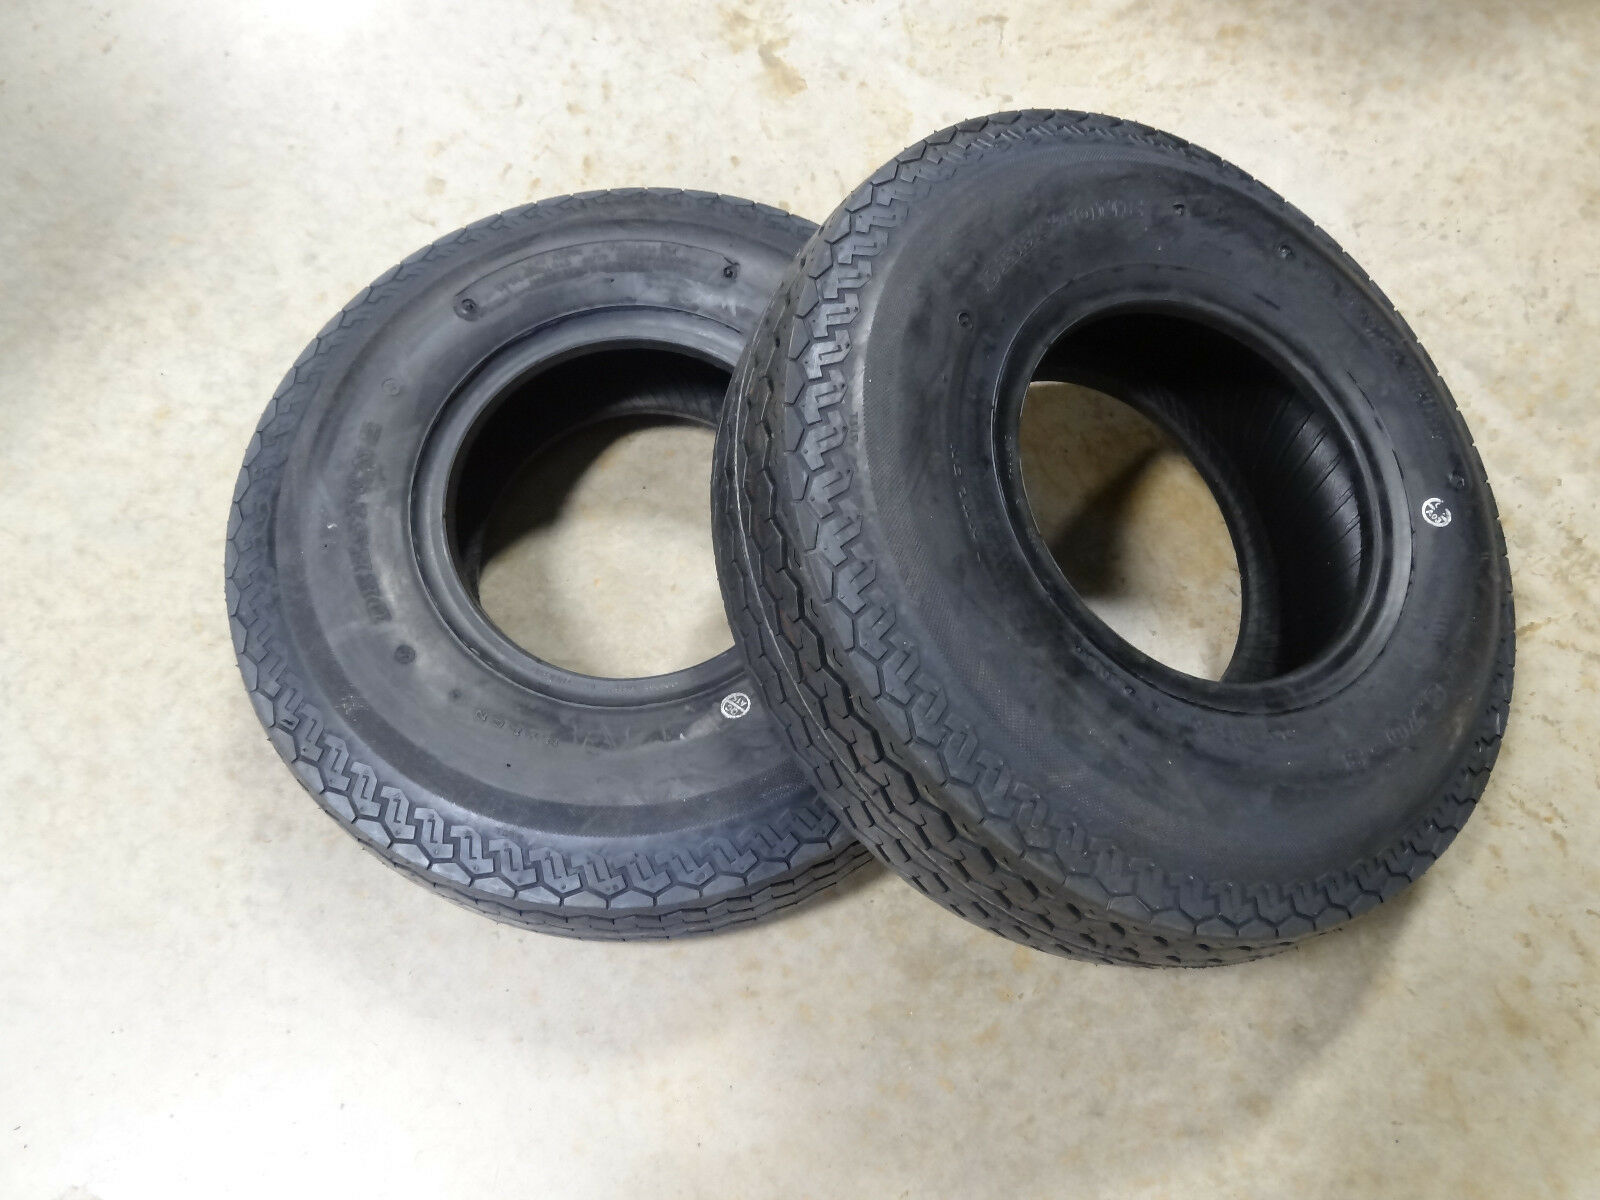 TWO New 5.70-8 Deestone D901 Highway Use Trailer Tires 8 ply Load Range D